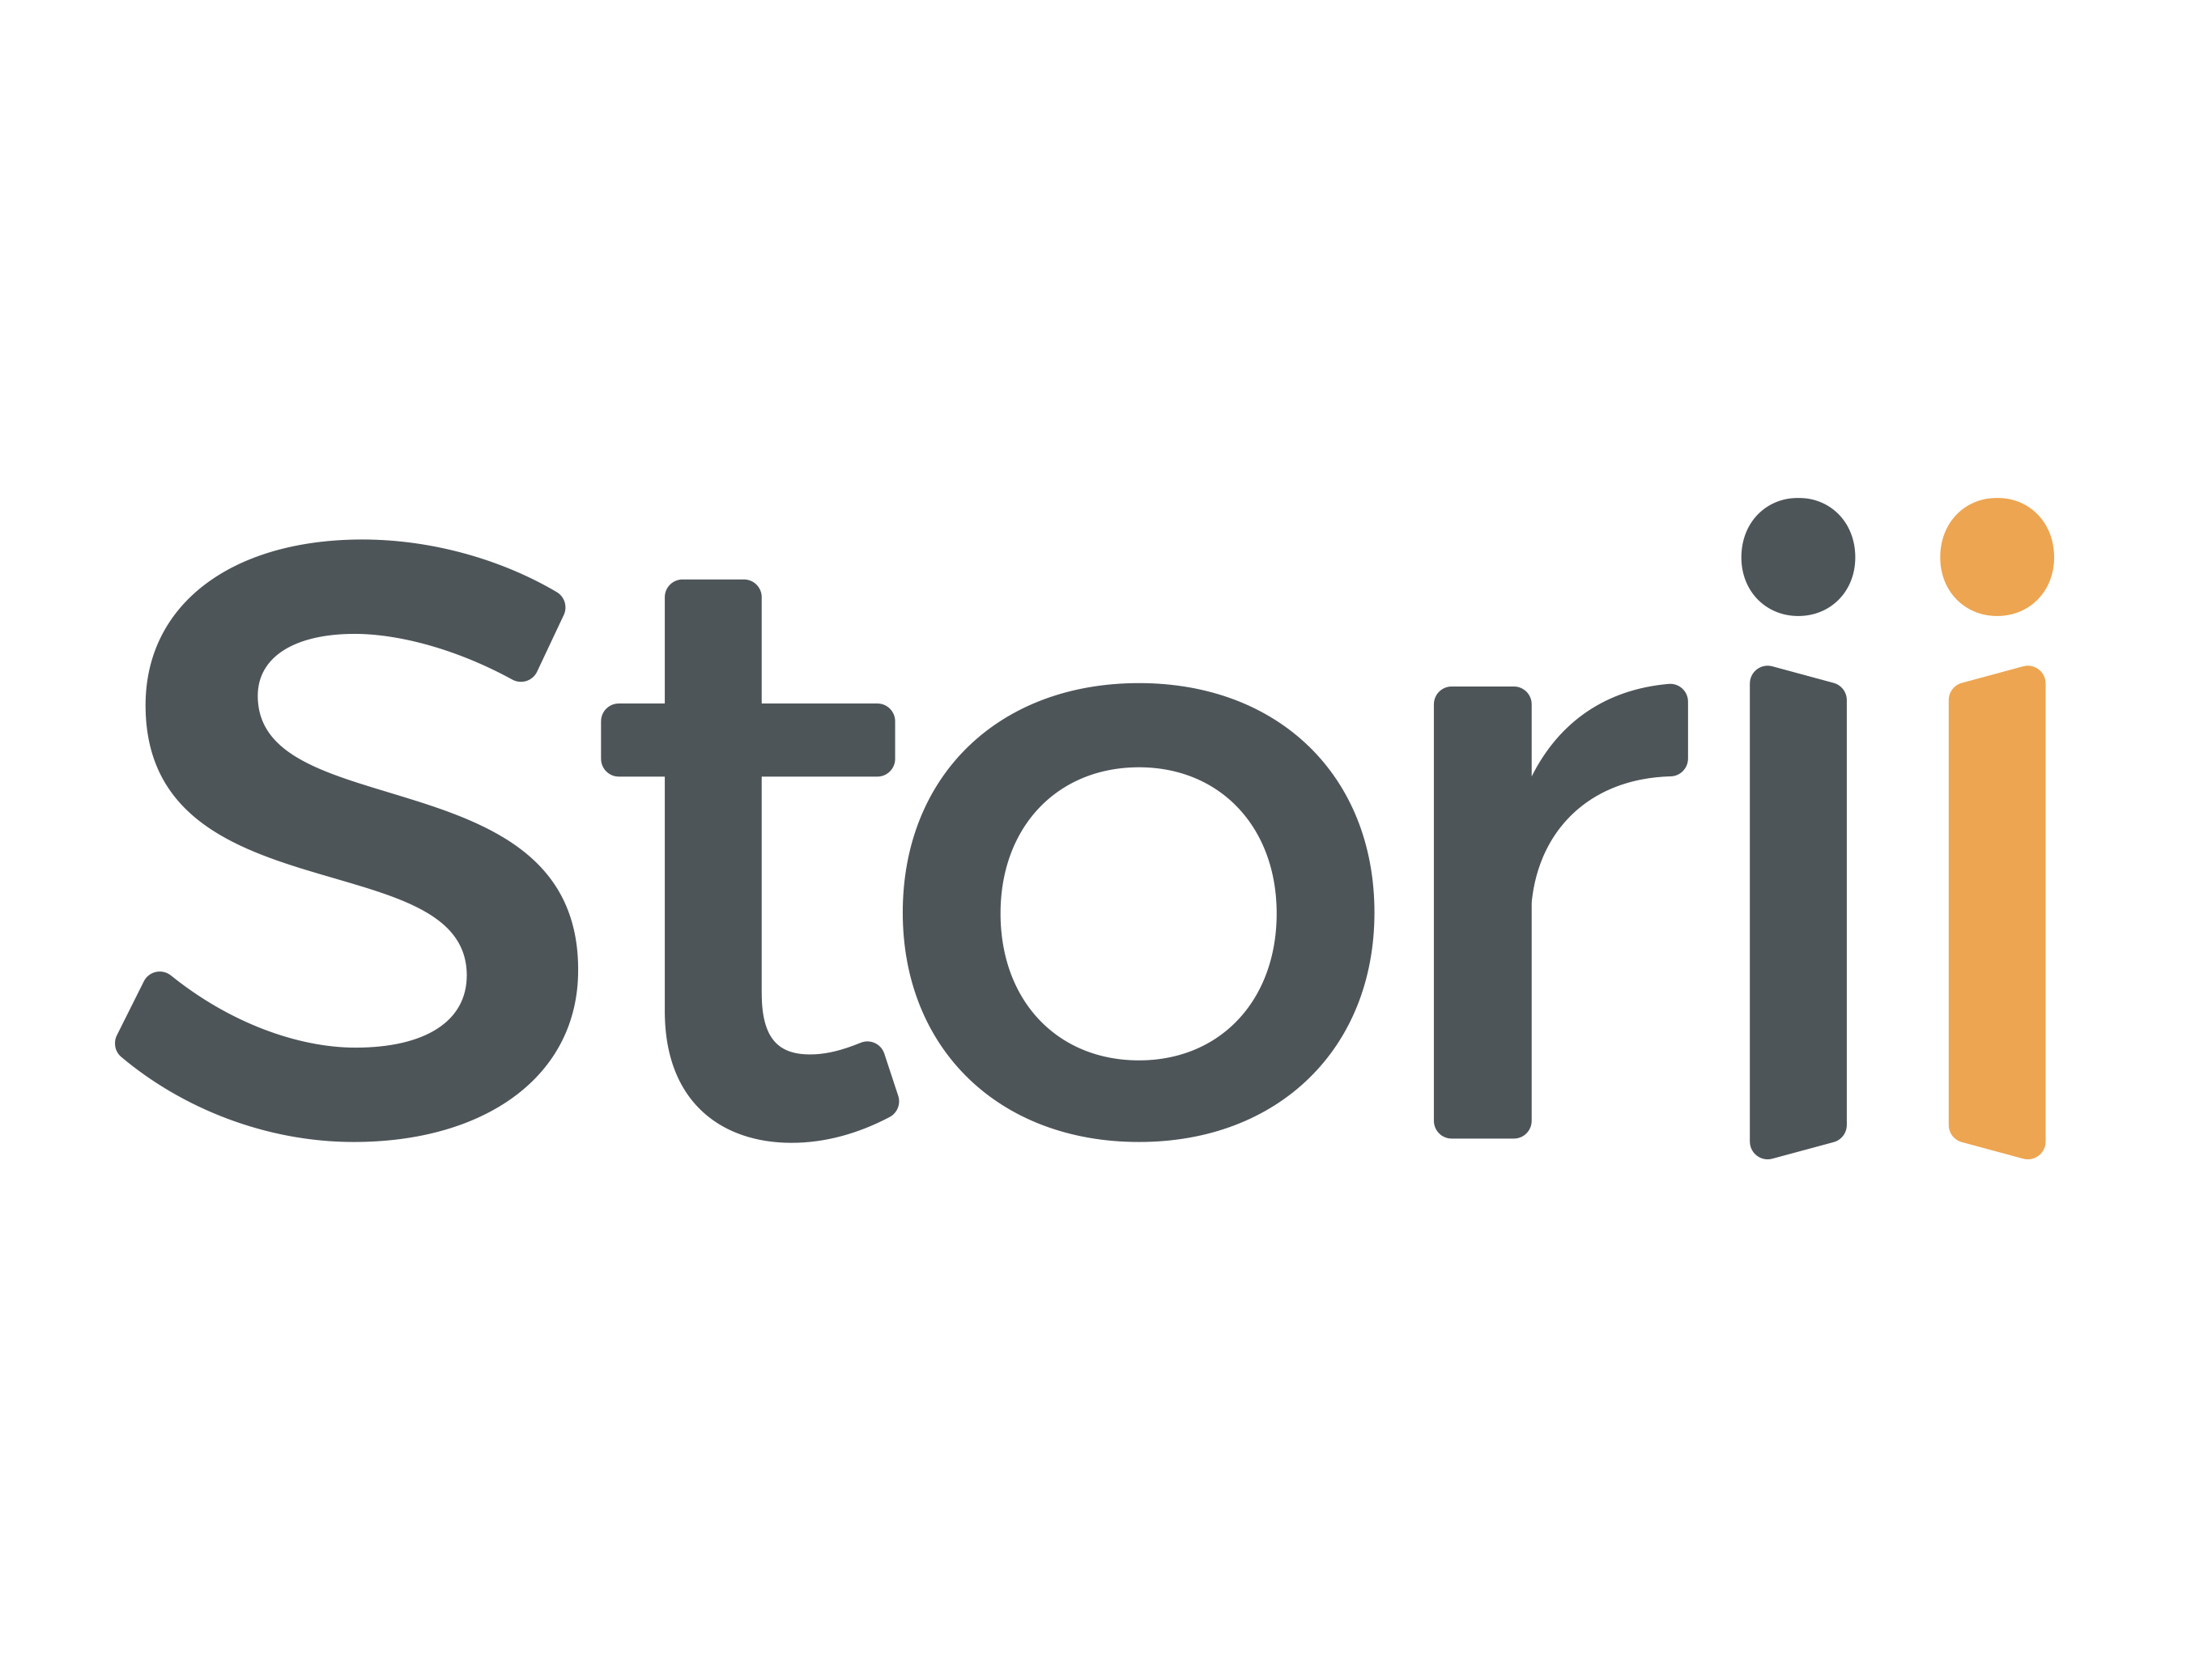 StoriiCare is an online platform that enables care workers to run reminiscence therapy with service users while embracing family input and participation.